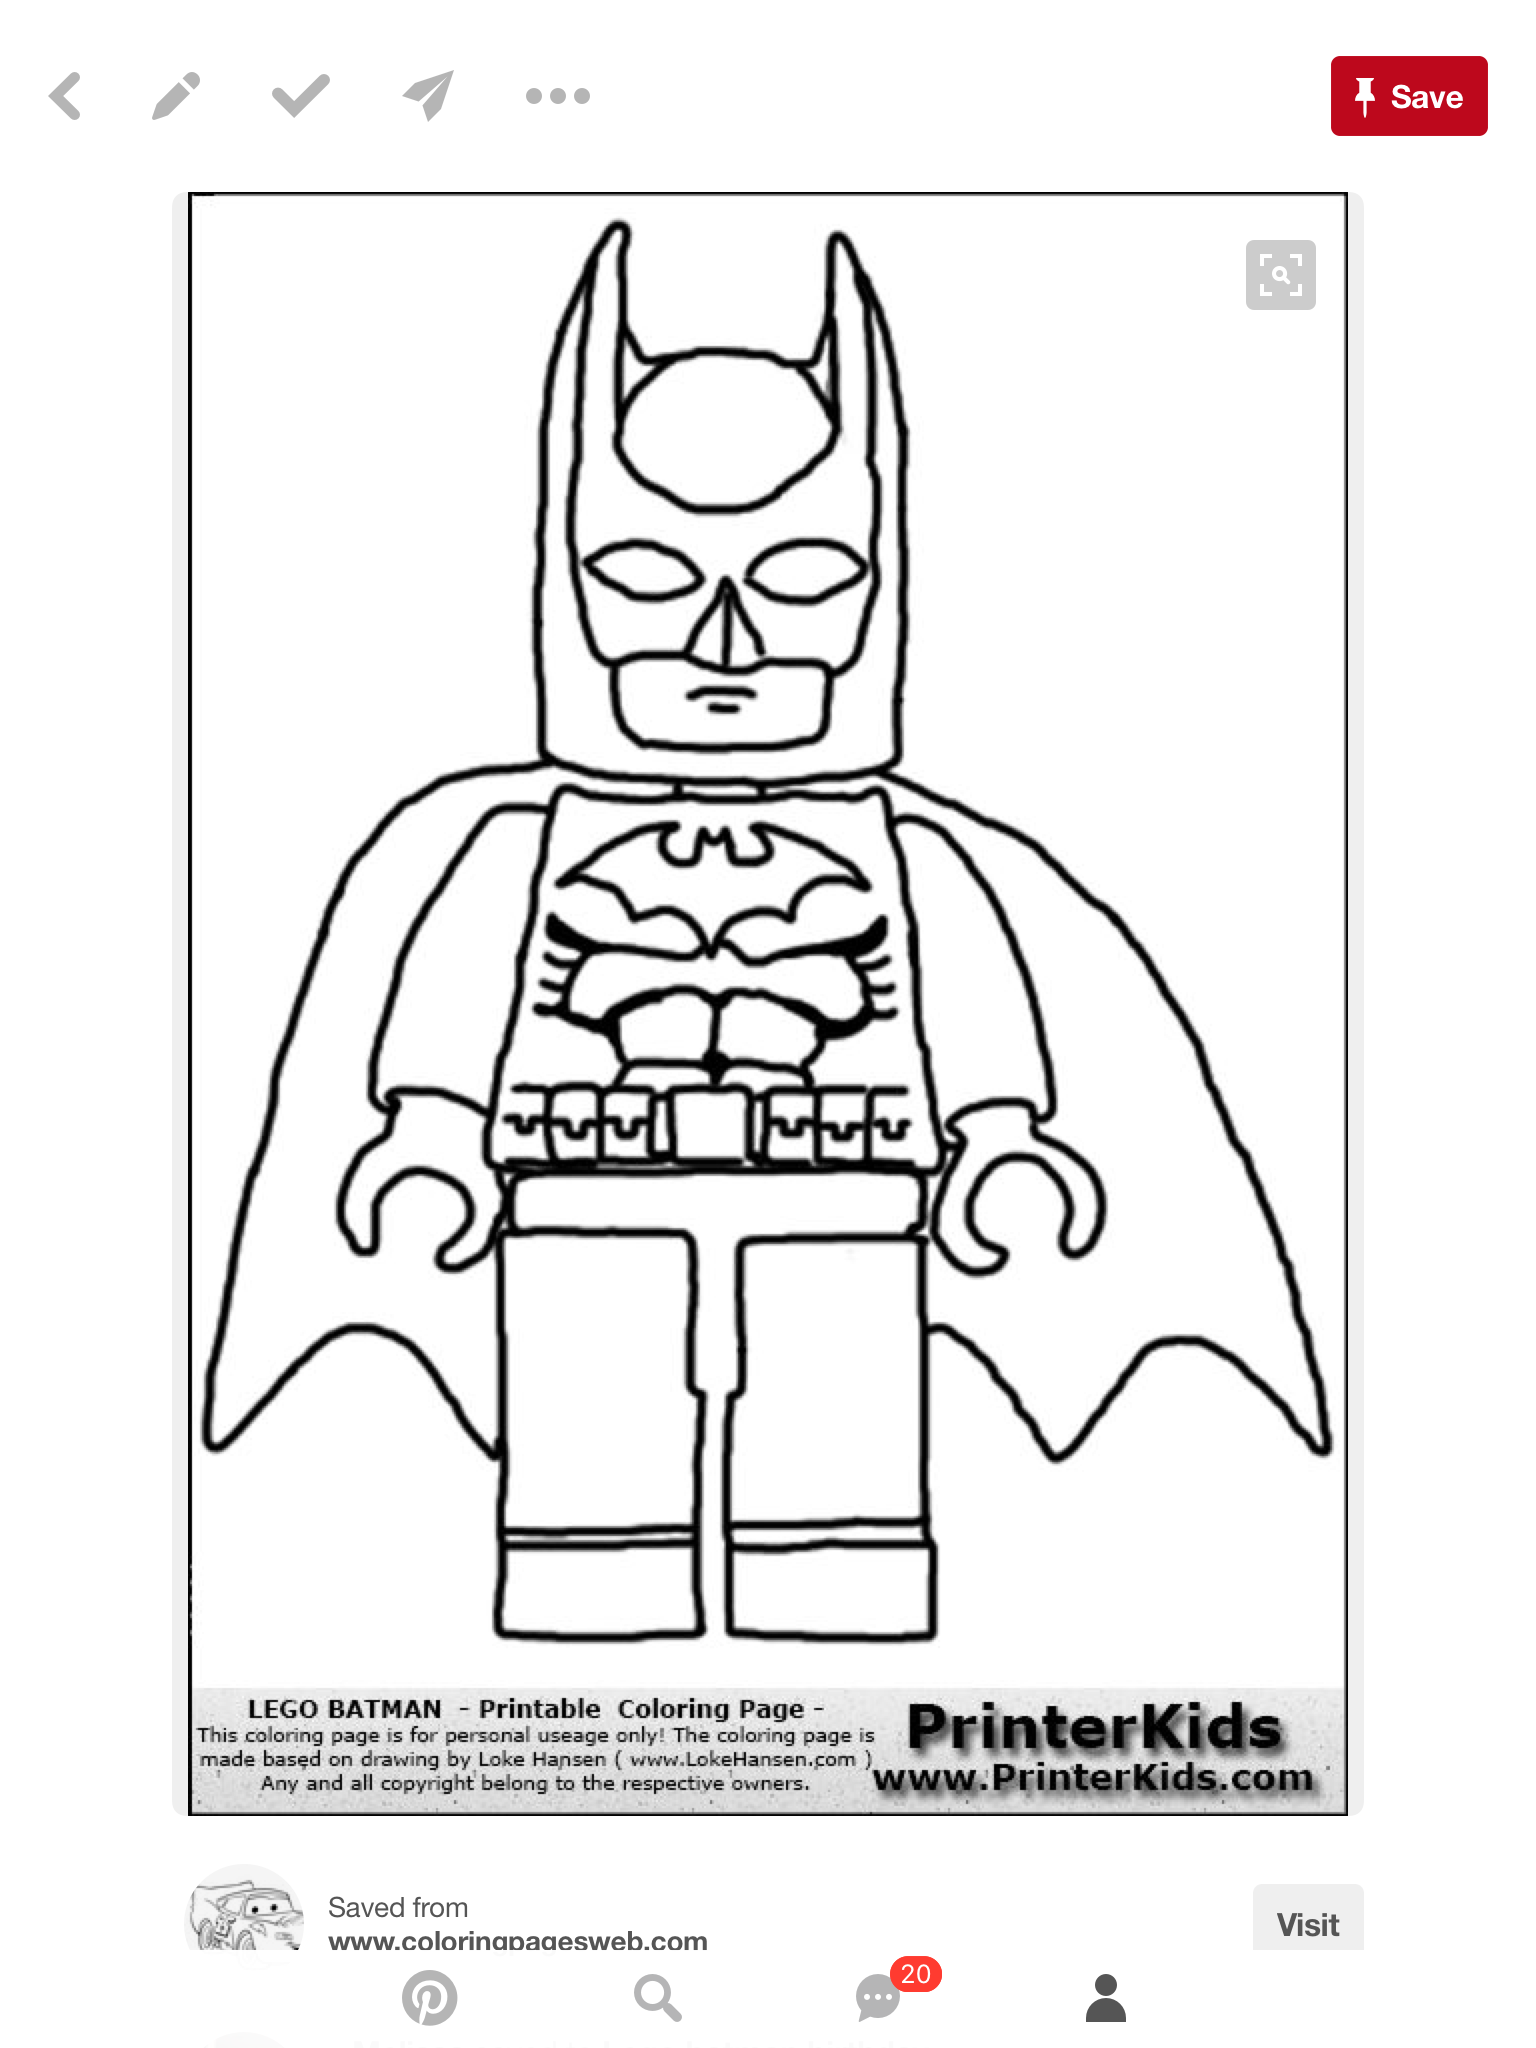 Pin By Flodan78 On Batman Lego Coloring Pages Batman Coloring Pages Lego Coloring